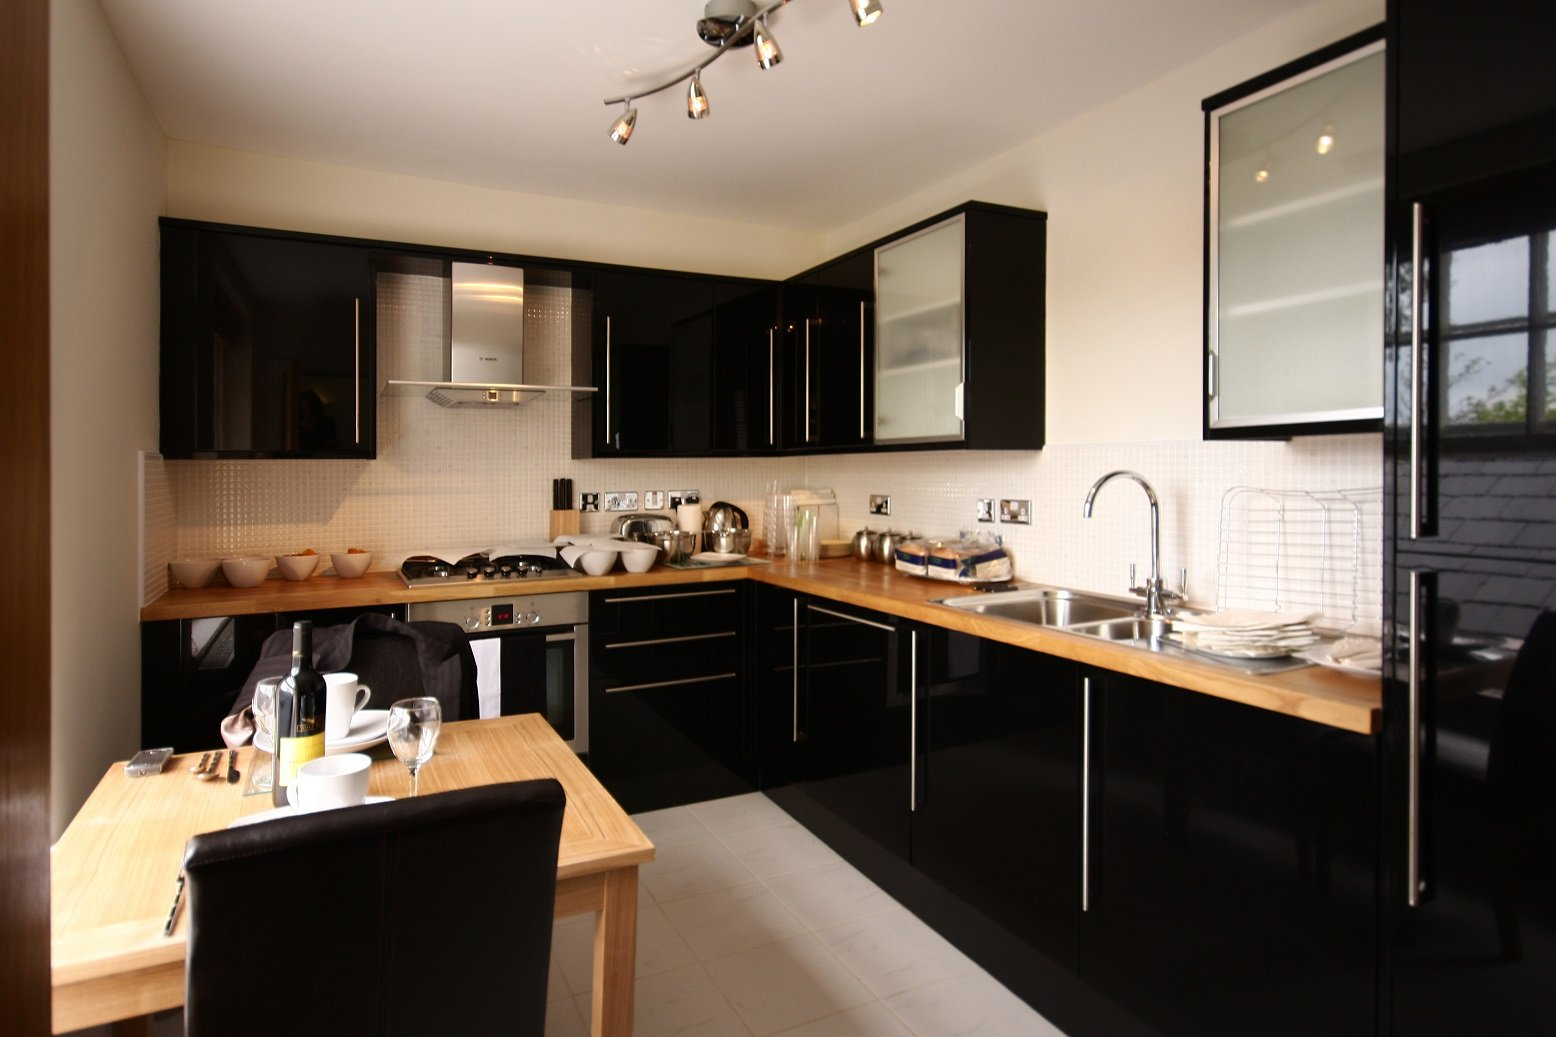 Wokingham-Serviced-Apartments,-Berkshire,-UK---Montague-House-available-now!-Book-Luxurious-Apartments-with-complimentary-housekeeping-&-On-site-Parking